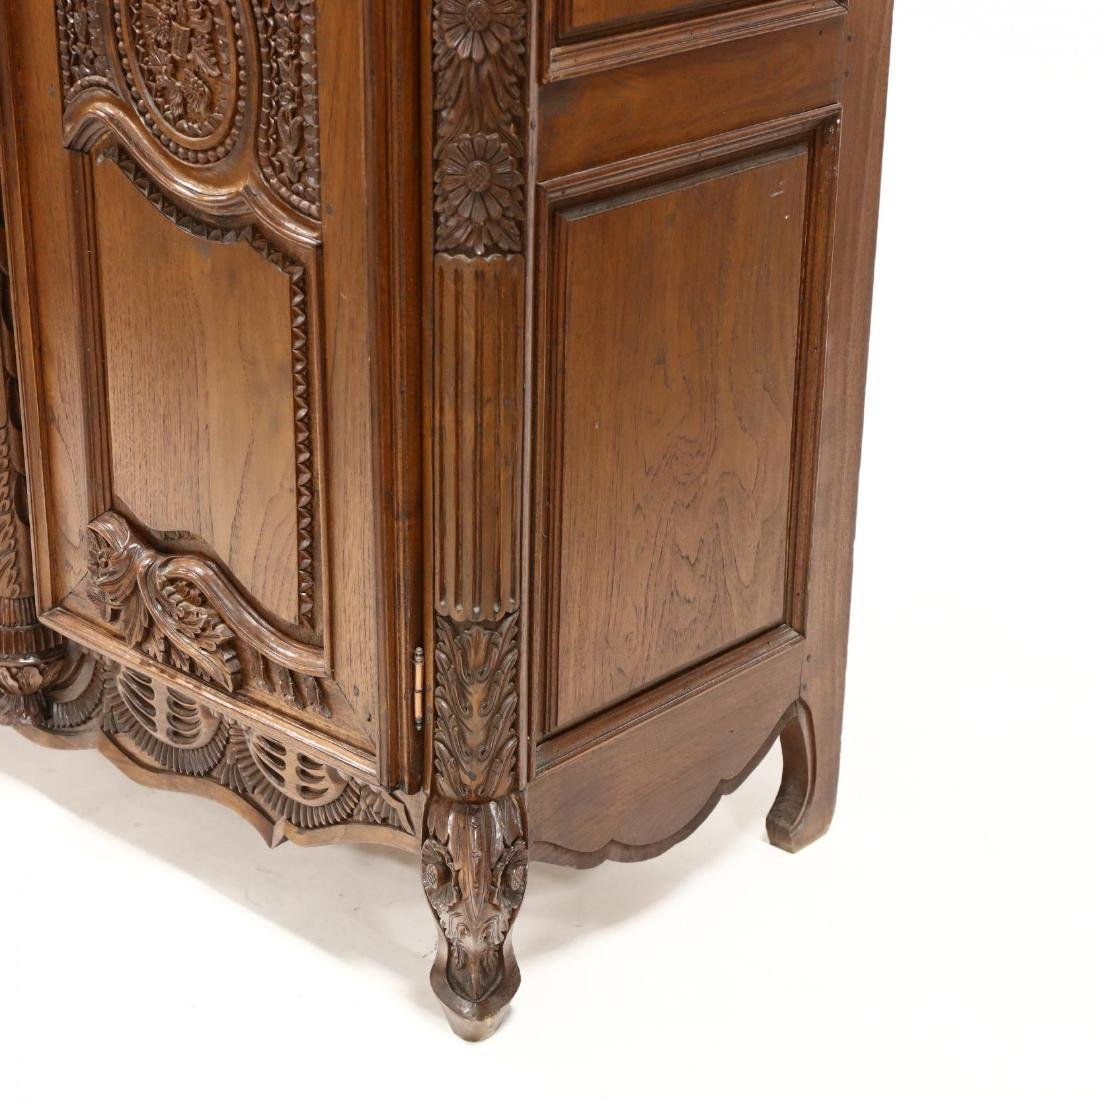 French Provincial Style Carved Mahogany Armoire - 5